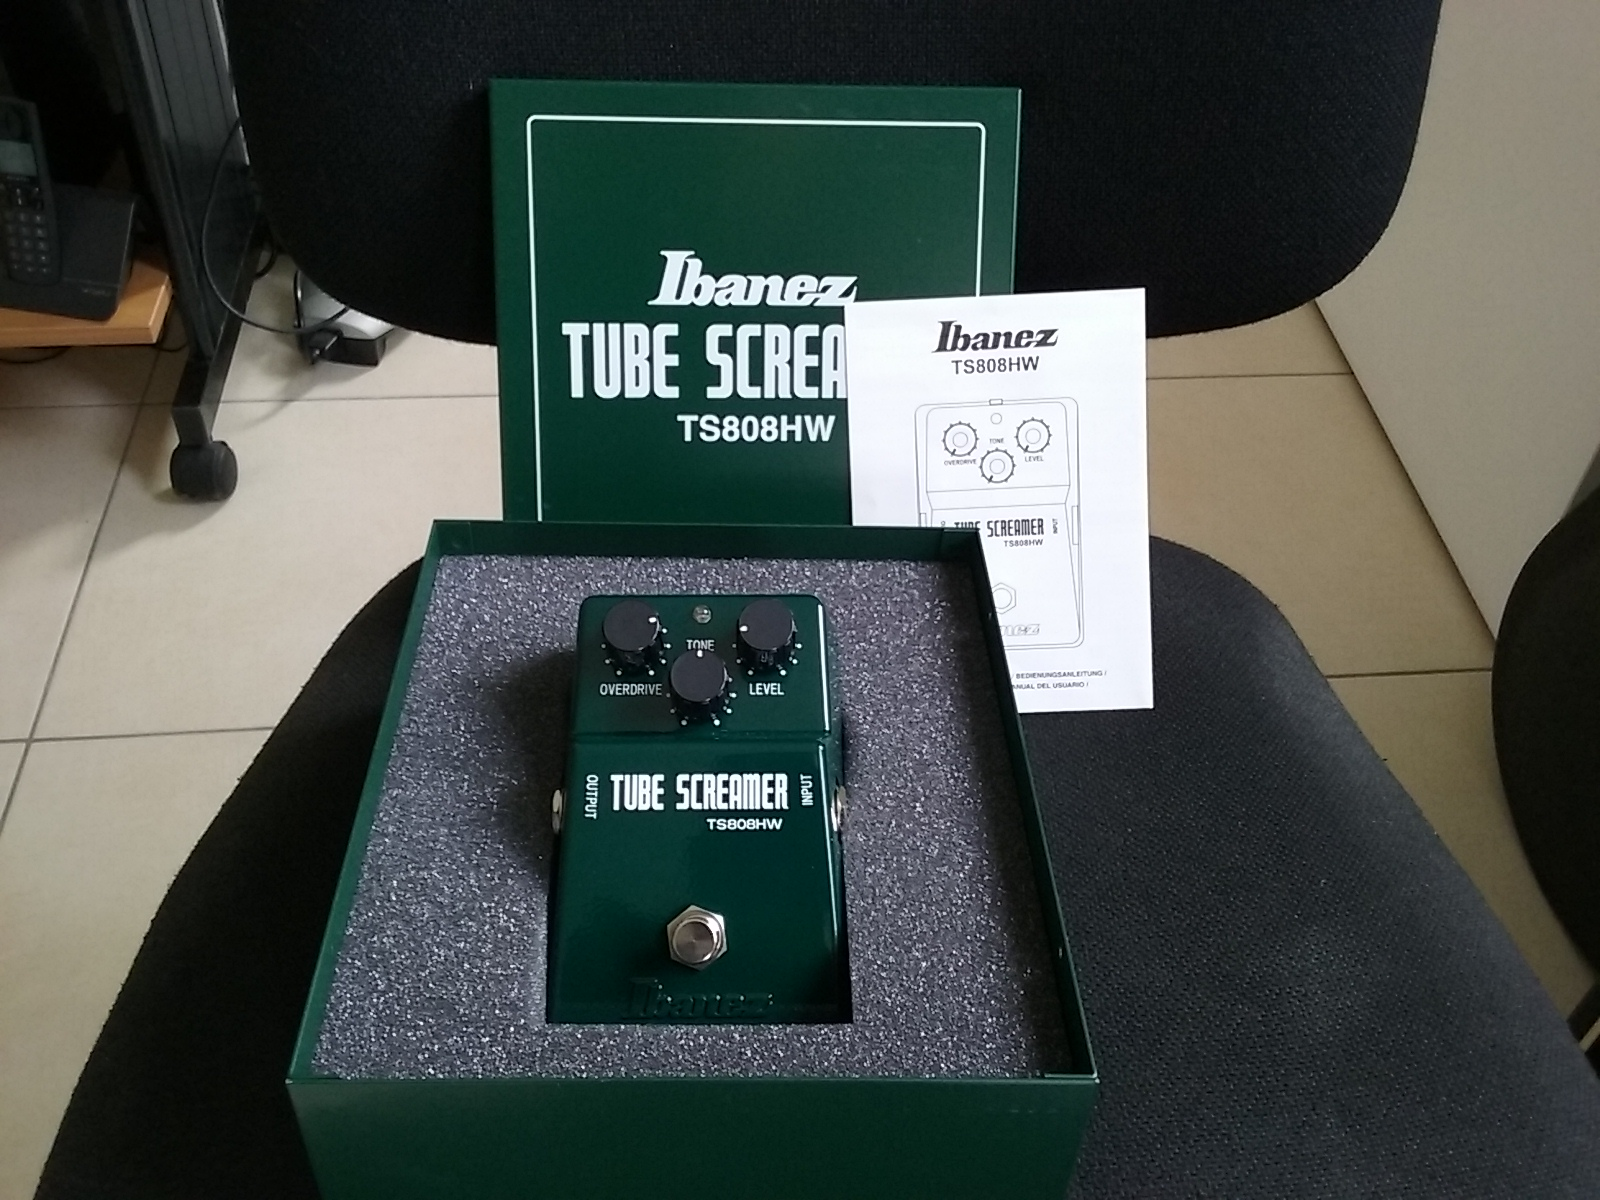 Ibanez Hand Wired Tube Screamer Data Wiring Diagram Ts808 Ts808hw Image 1083434 Audiofanzine Rh En Com Handwired